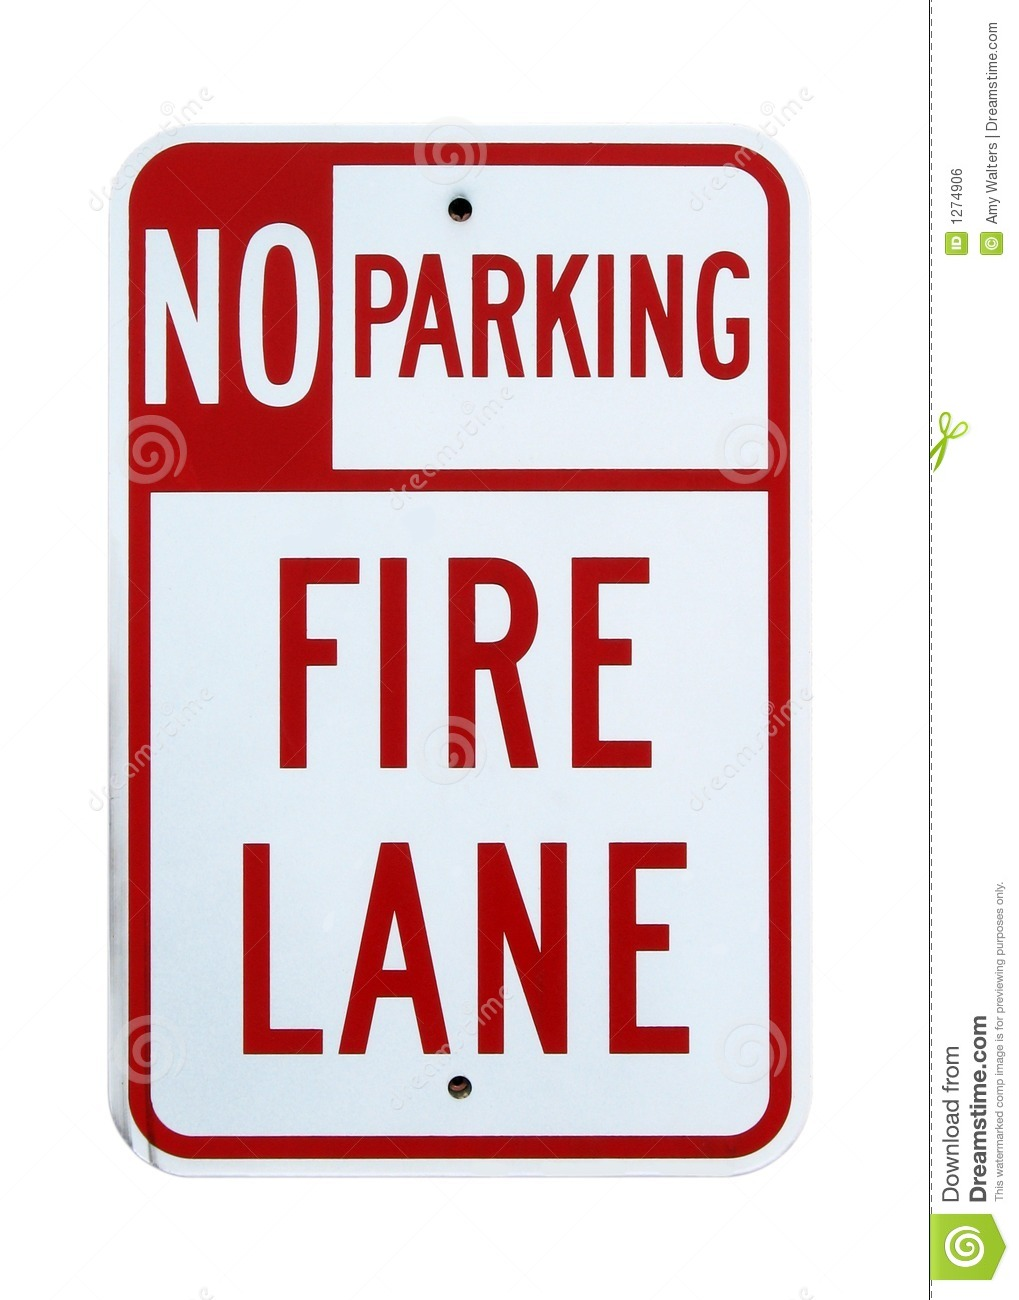 No Parking Fire Lane sign - Isolated